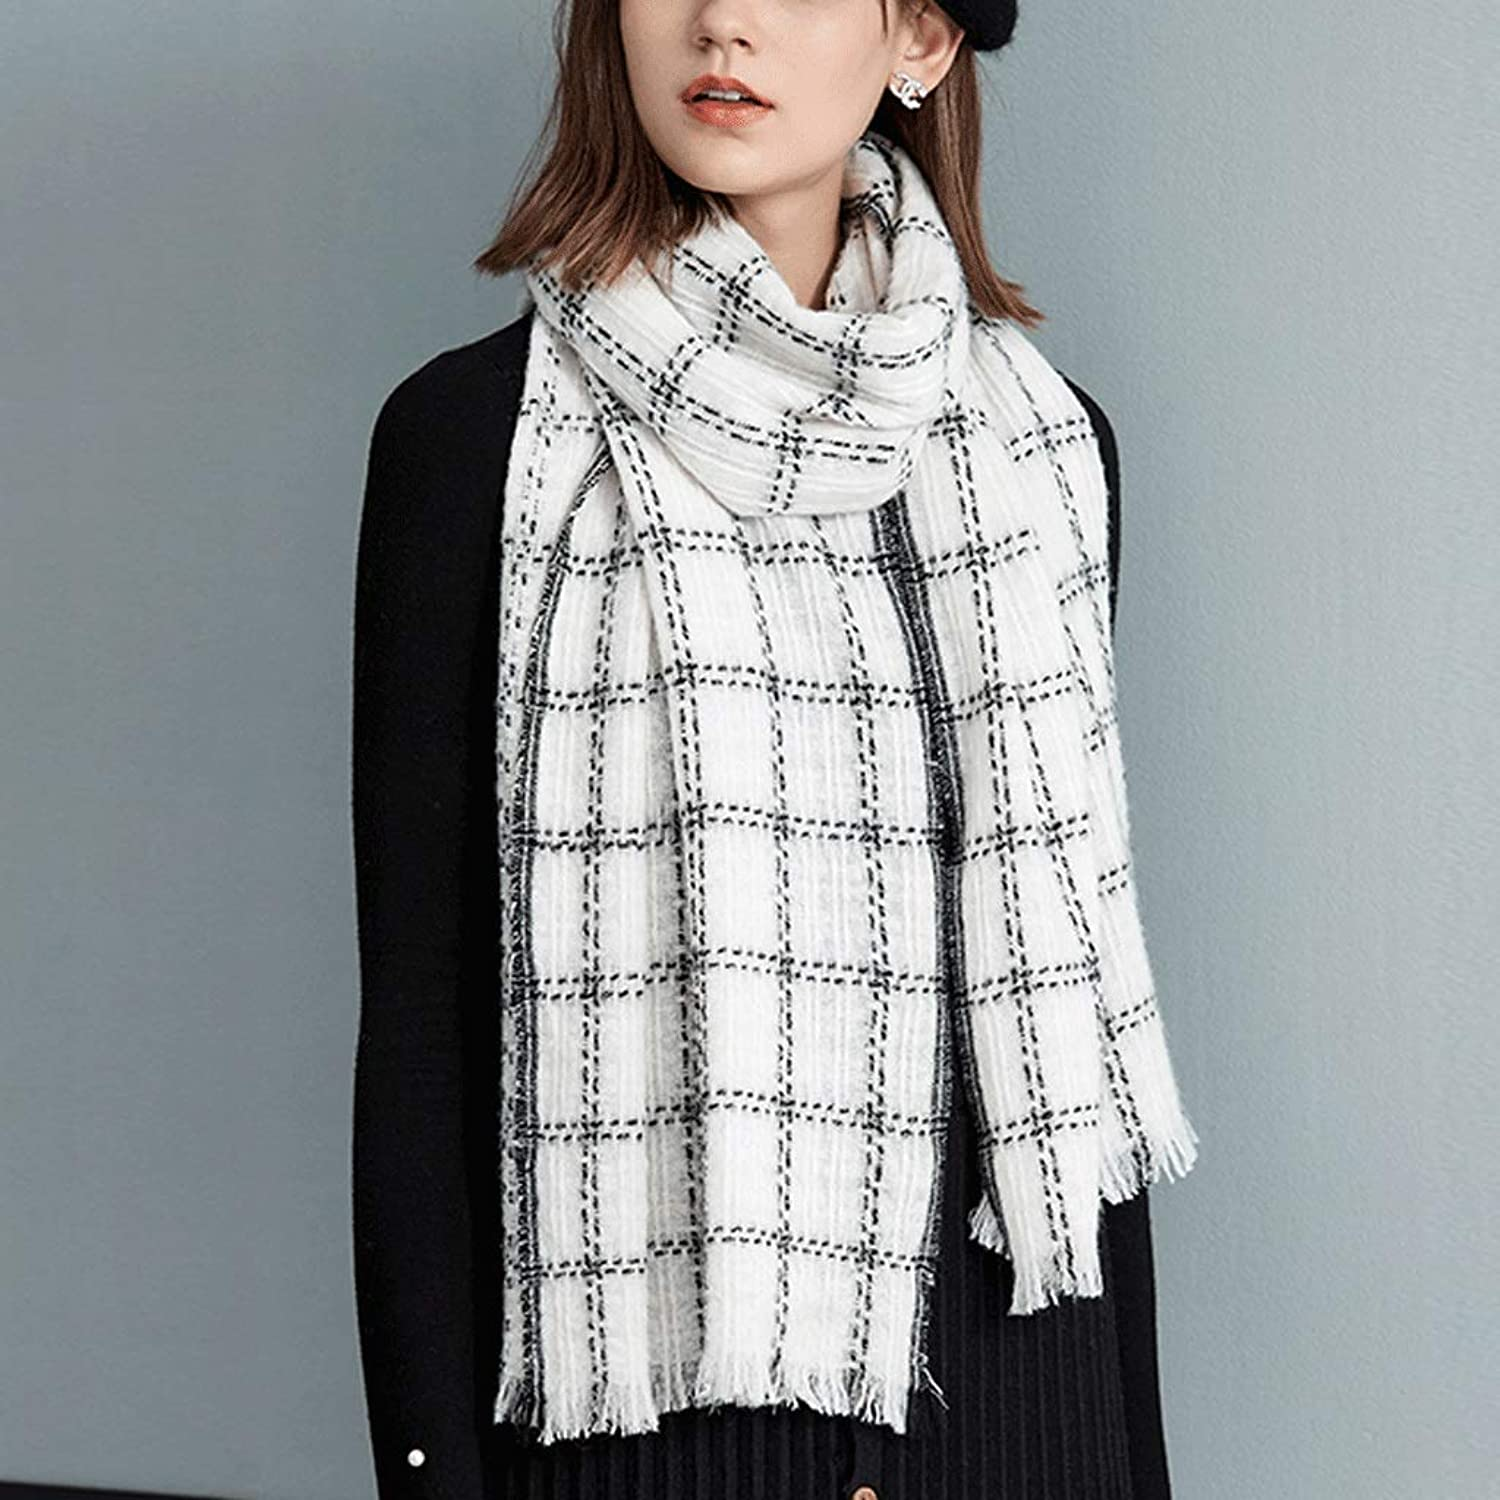 CHX Winter Shawl Scarf Both Uses Woman Student Thicken Lattice Keep Warm 190cm×50cm V (color   White)